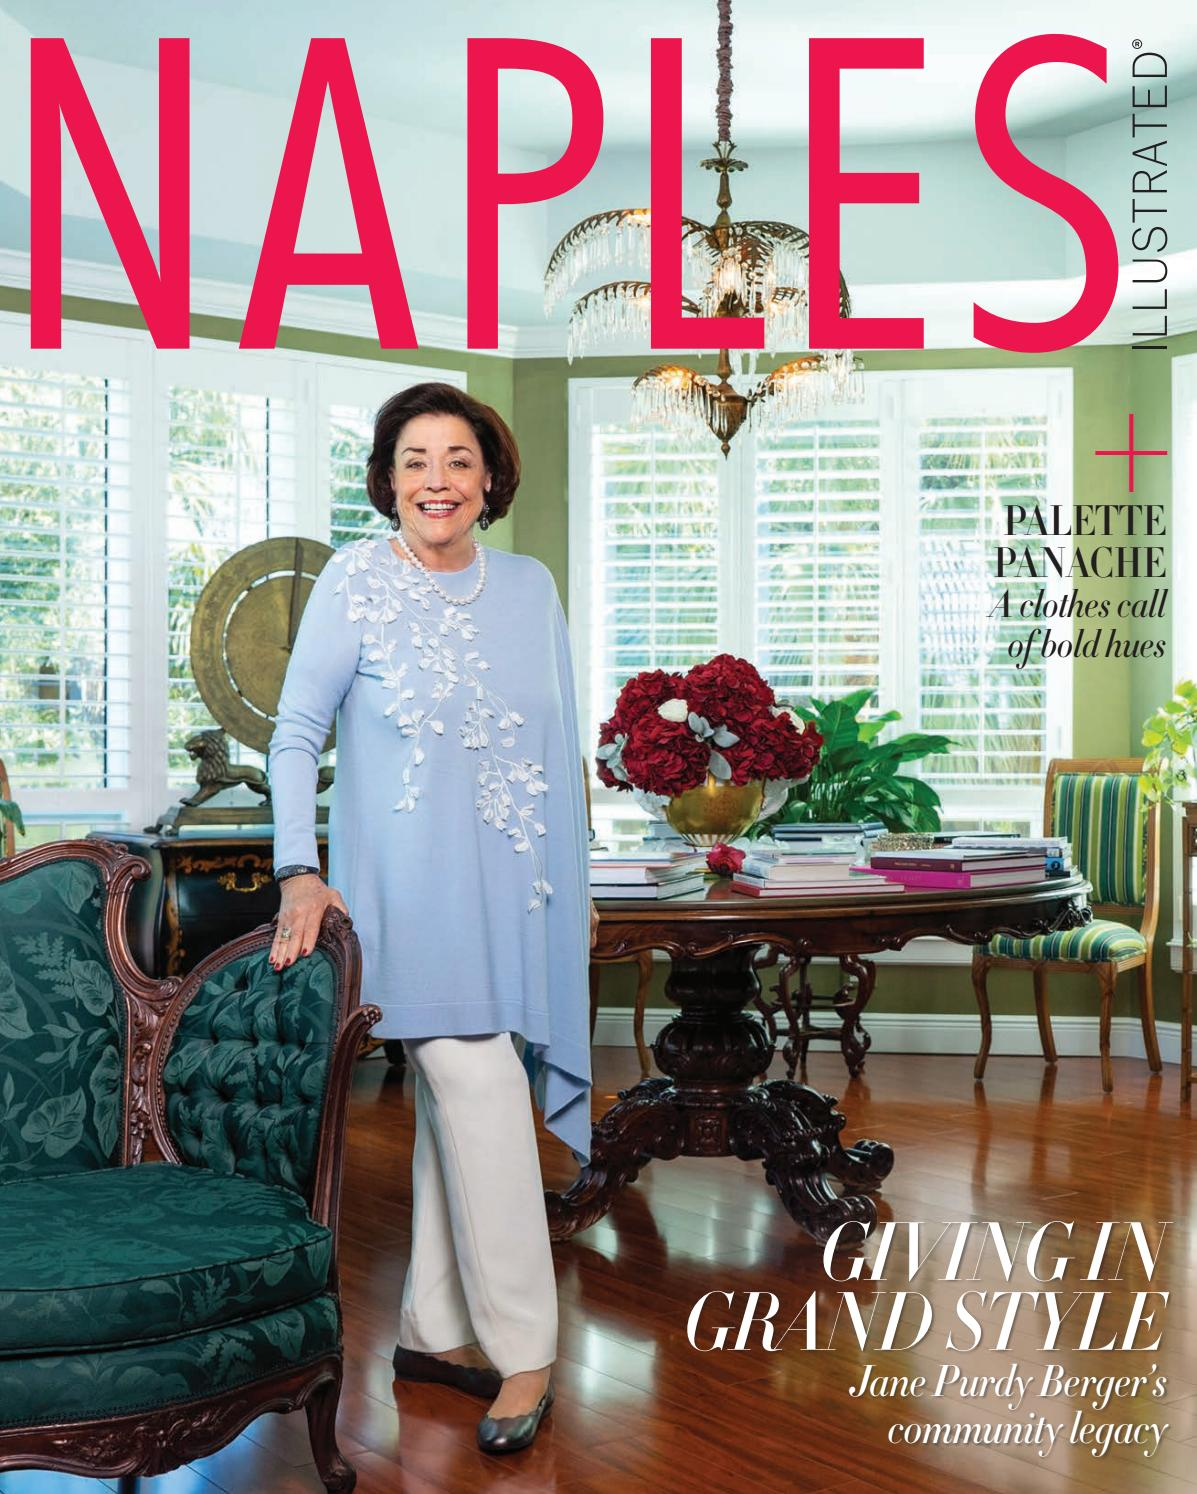 b207d6624b7 Naples Illustrated March 2019 by Palm Beach Media Group - issuu